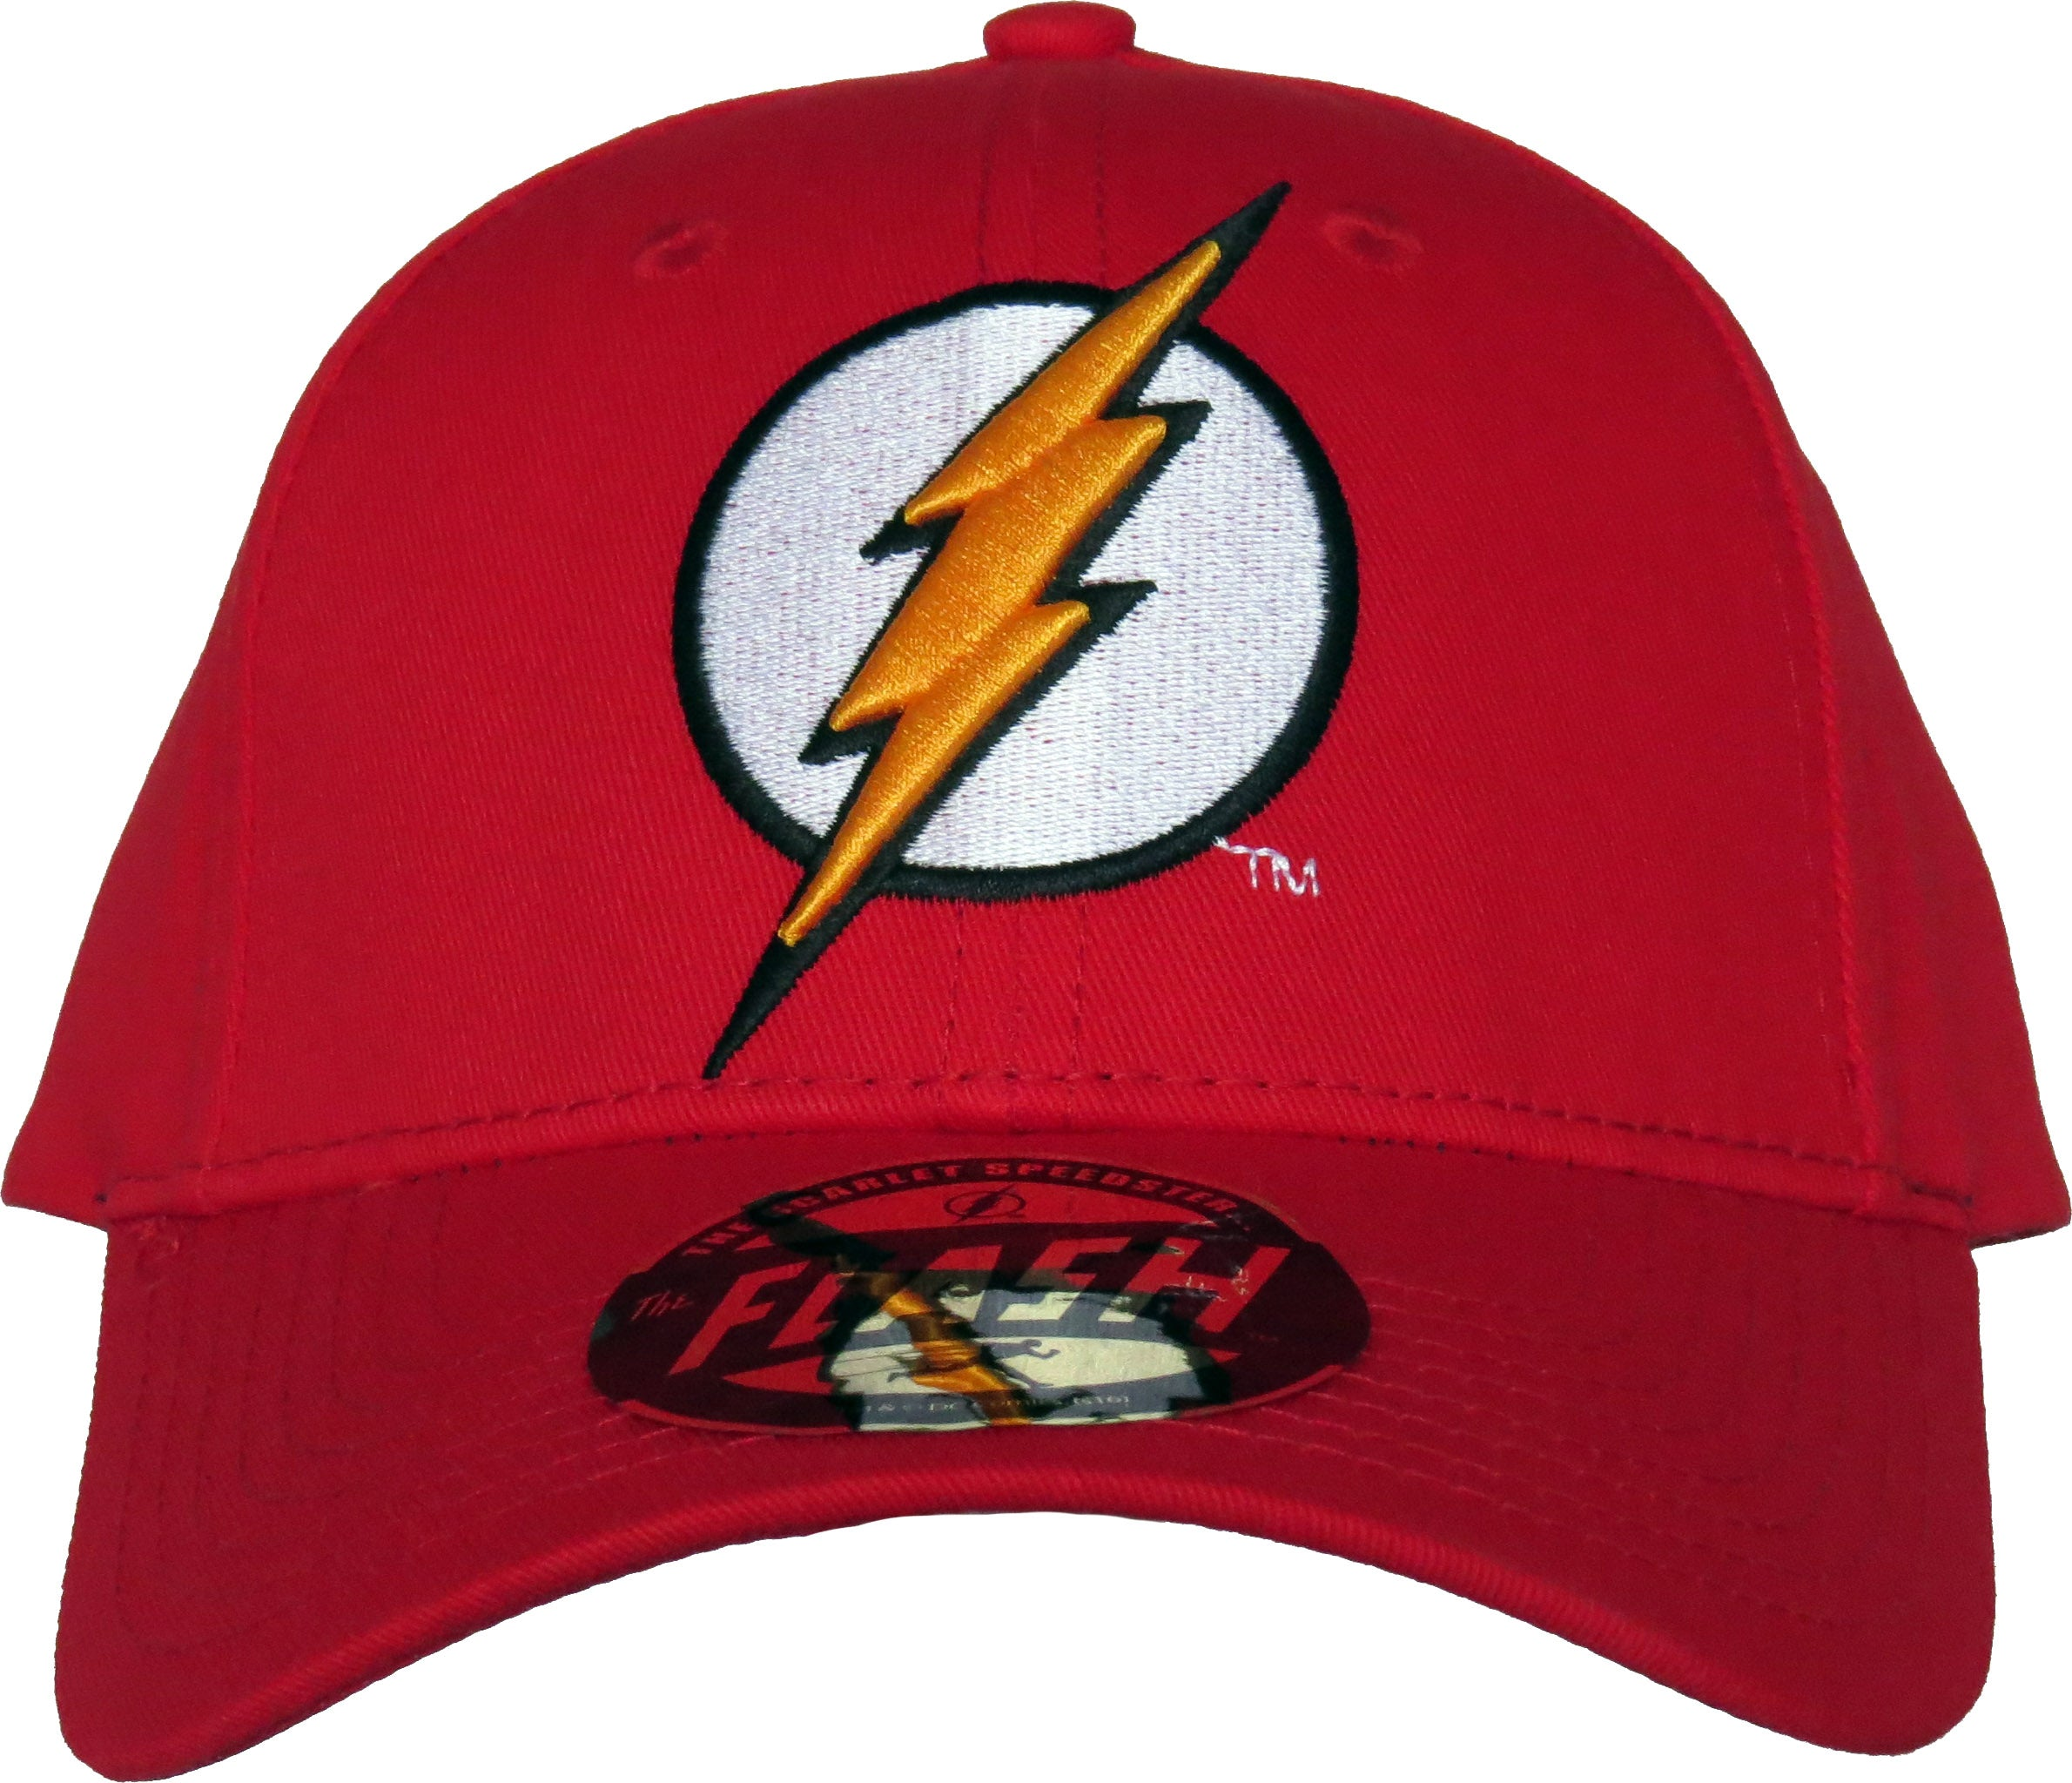 a1a587b5579 The Flash DC Comics Red Adjustable Cap – lovemycap